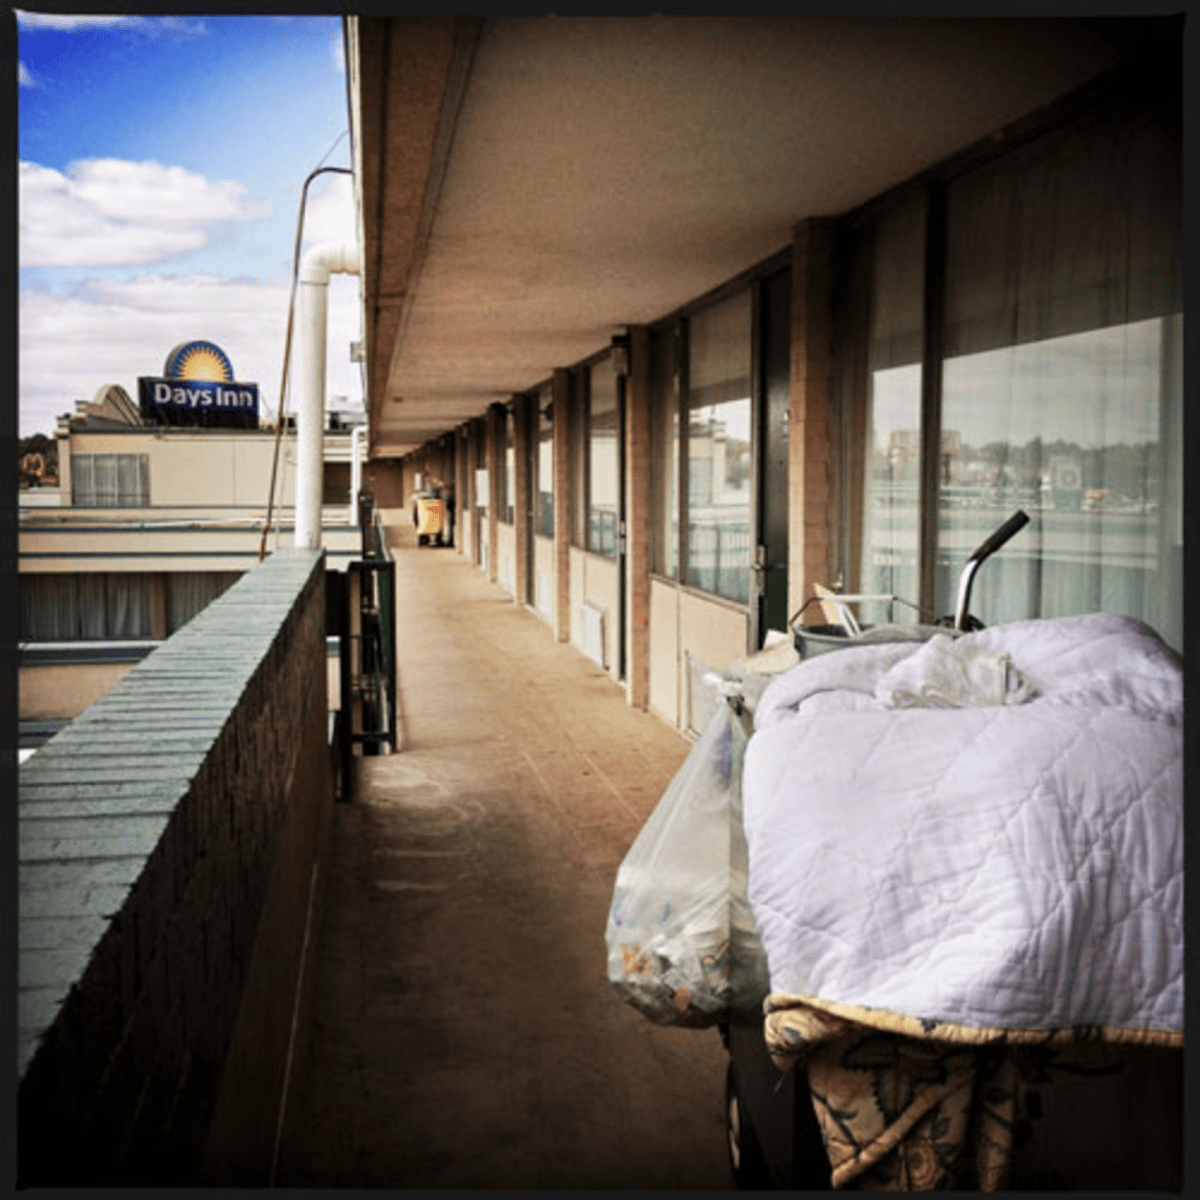 Its shelters overwhelmed, the city has been forced to house homeless families at motels like the Days Inn on New York Avenue NE.